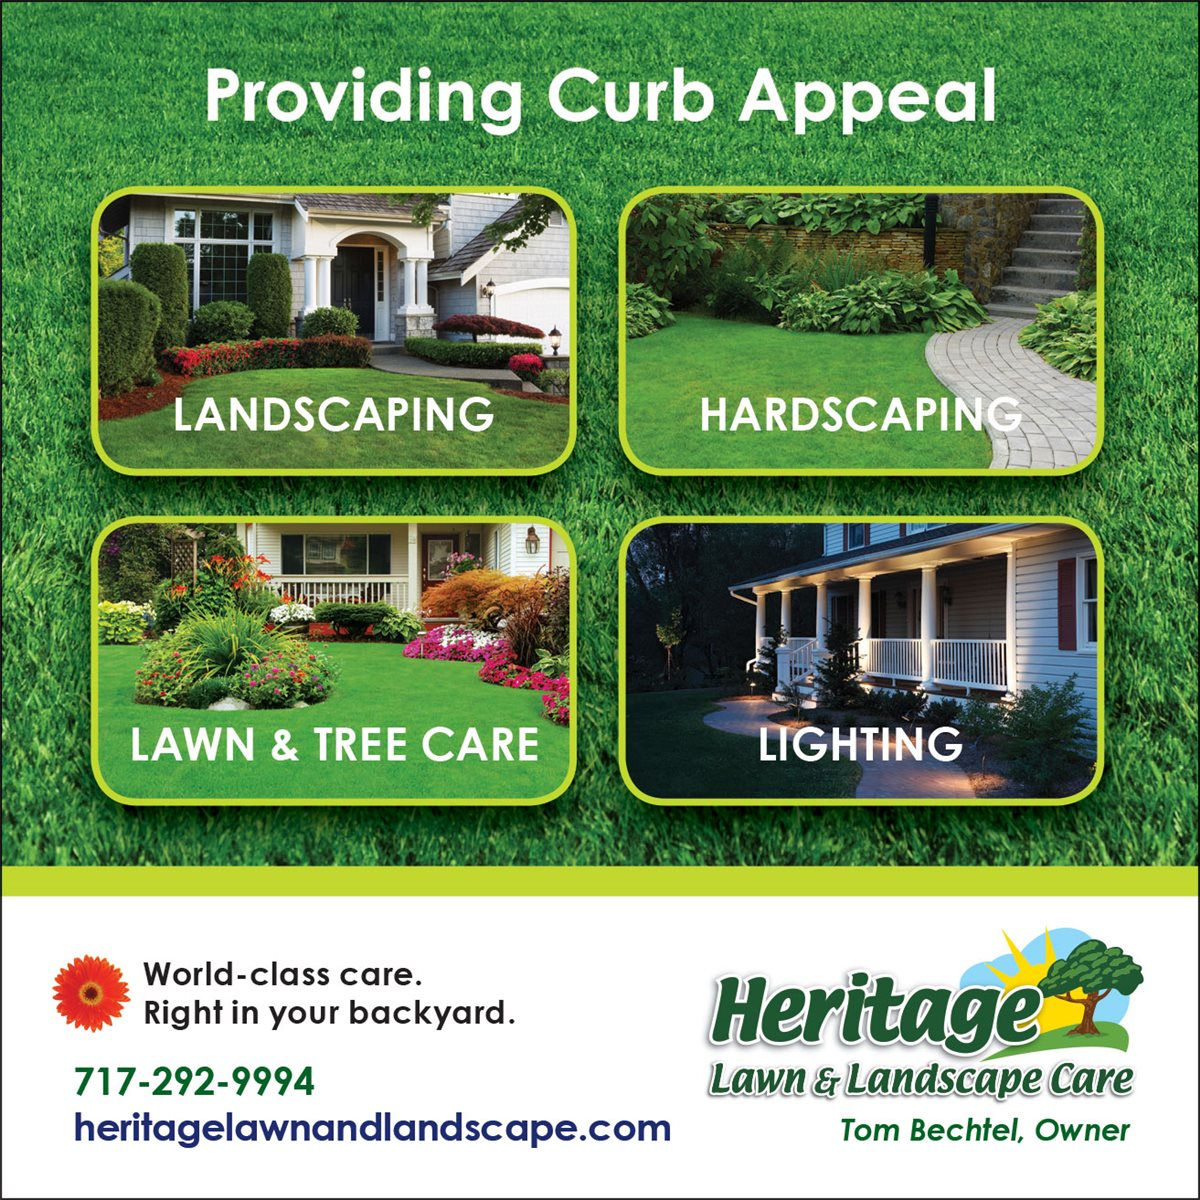 Heritage Lawn and Landscape Care - Christians In Business - Heritage Lawn And Landscape Care - Details